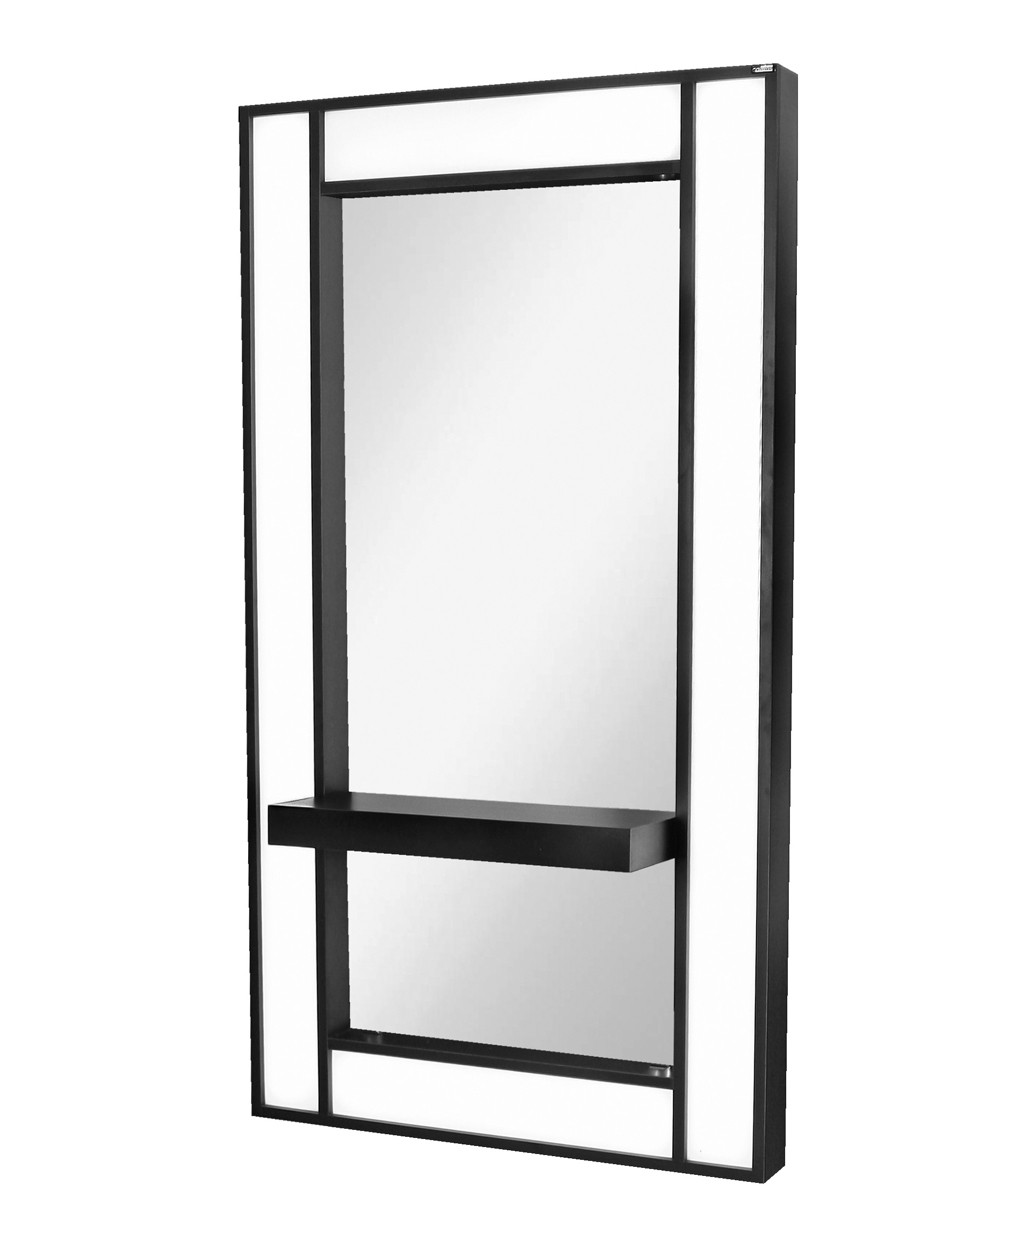 6671-36 Lox Wall-Mounted Mirror w/ Ledge and LED Lights